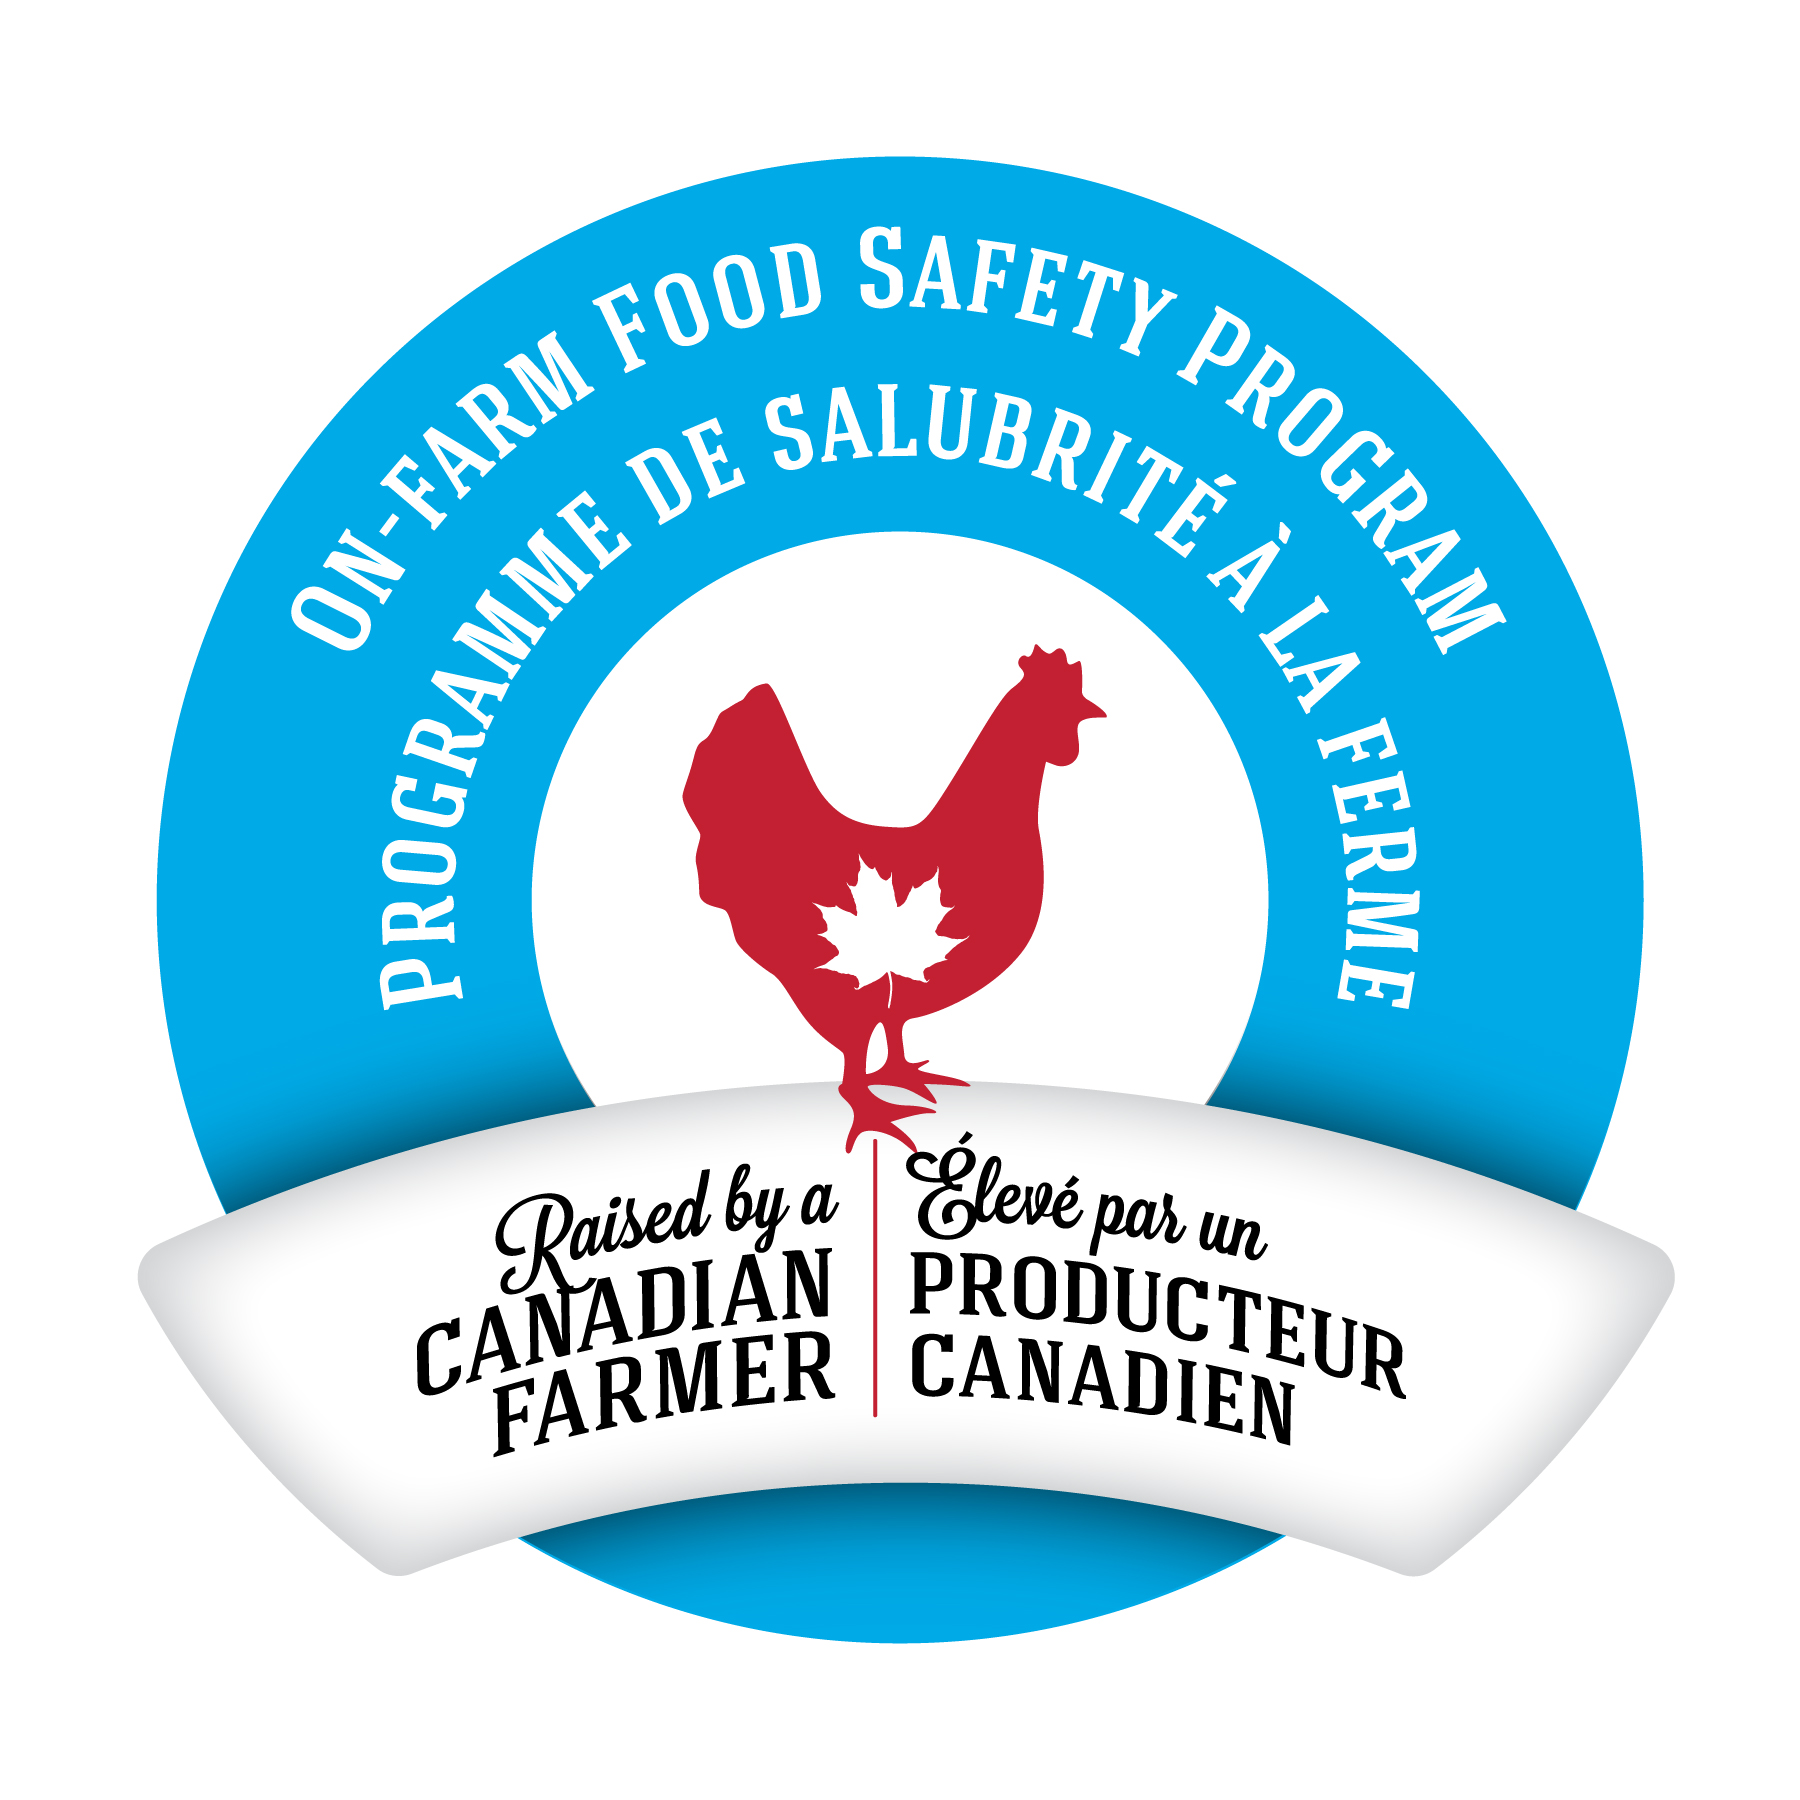 Raised By A Canadian Farmer On-Farm Food Safety Program  image